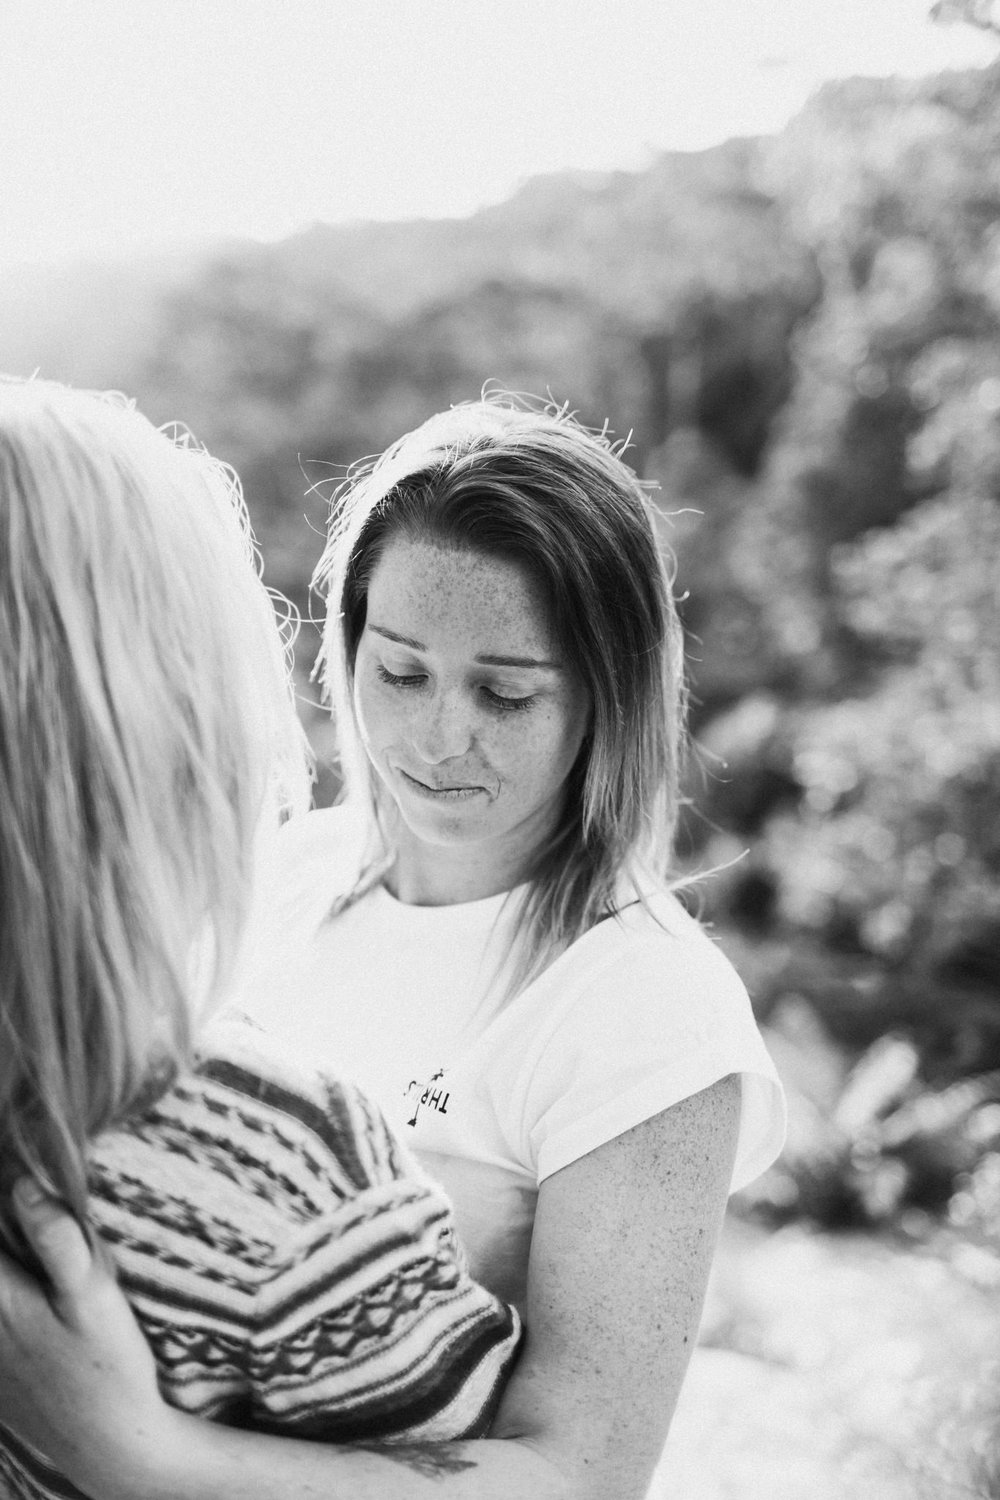 Bri_Gem_Proposal_LaurenAnnePhotography-1089.jpg